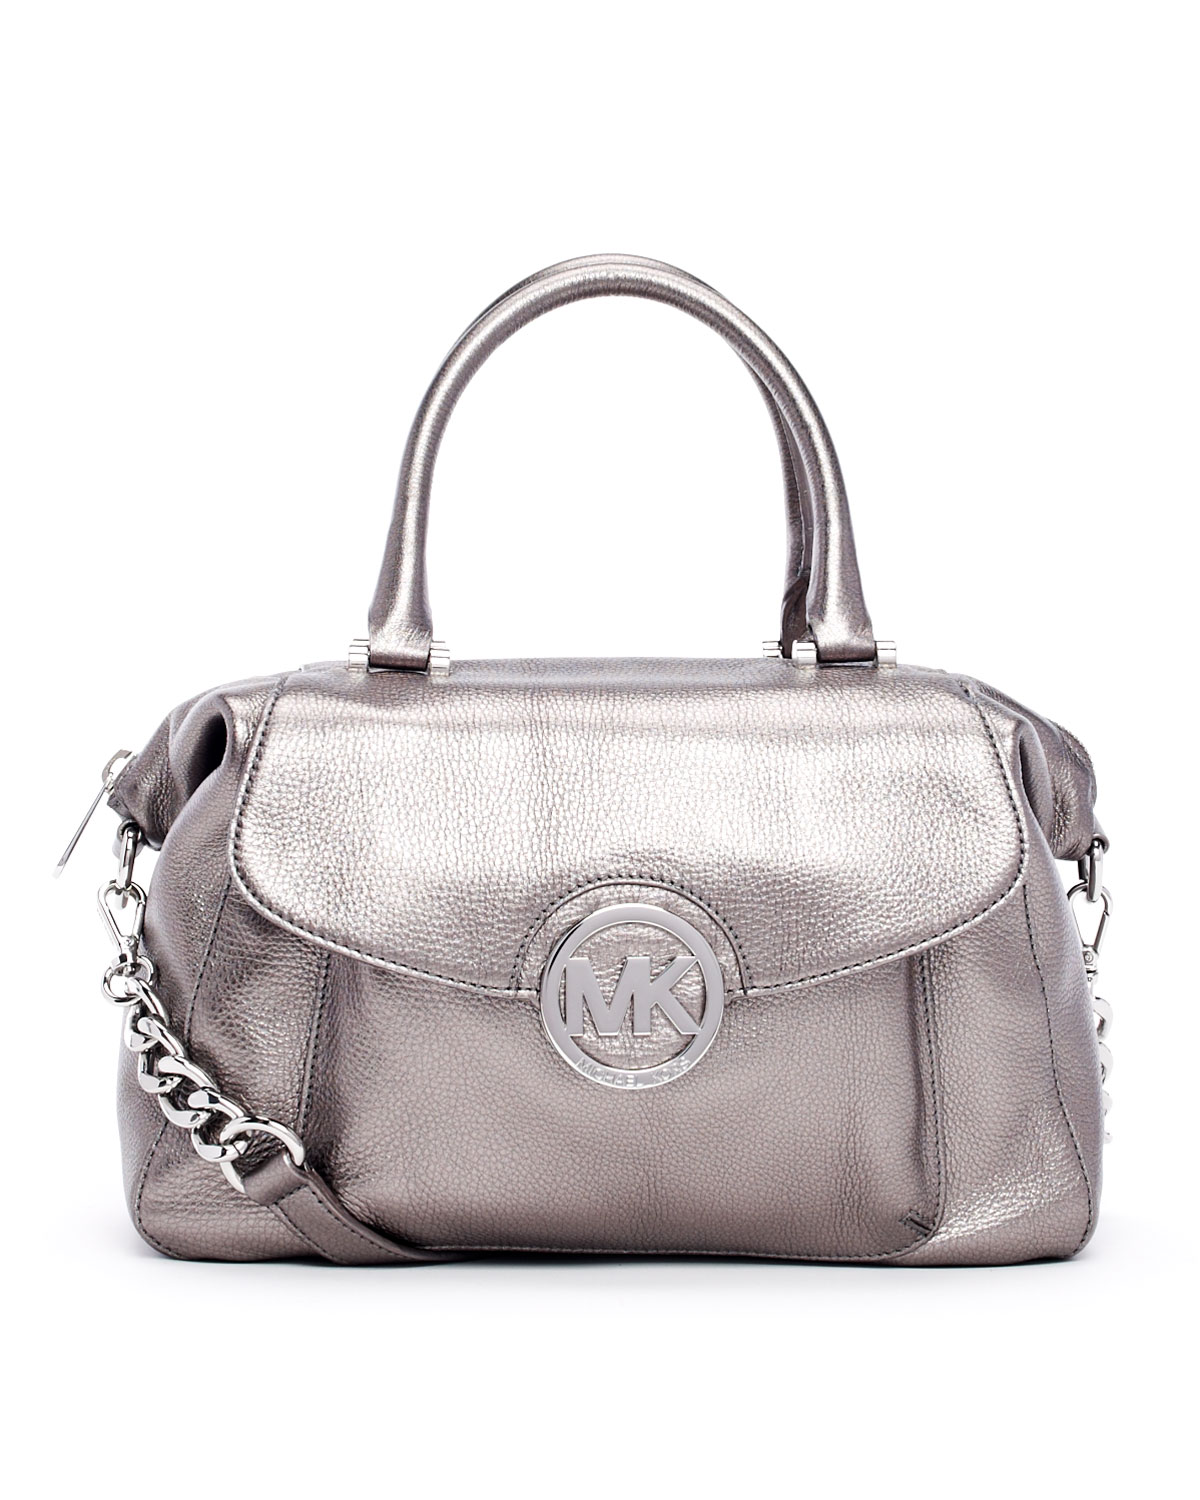 d8e9f4900e8 Lyst - Michael Kors Large Fulton Metallic Pebbled Leather Satchel in ...